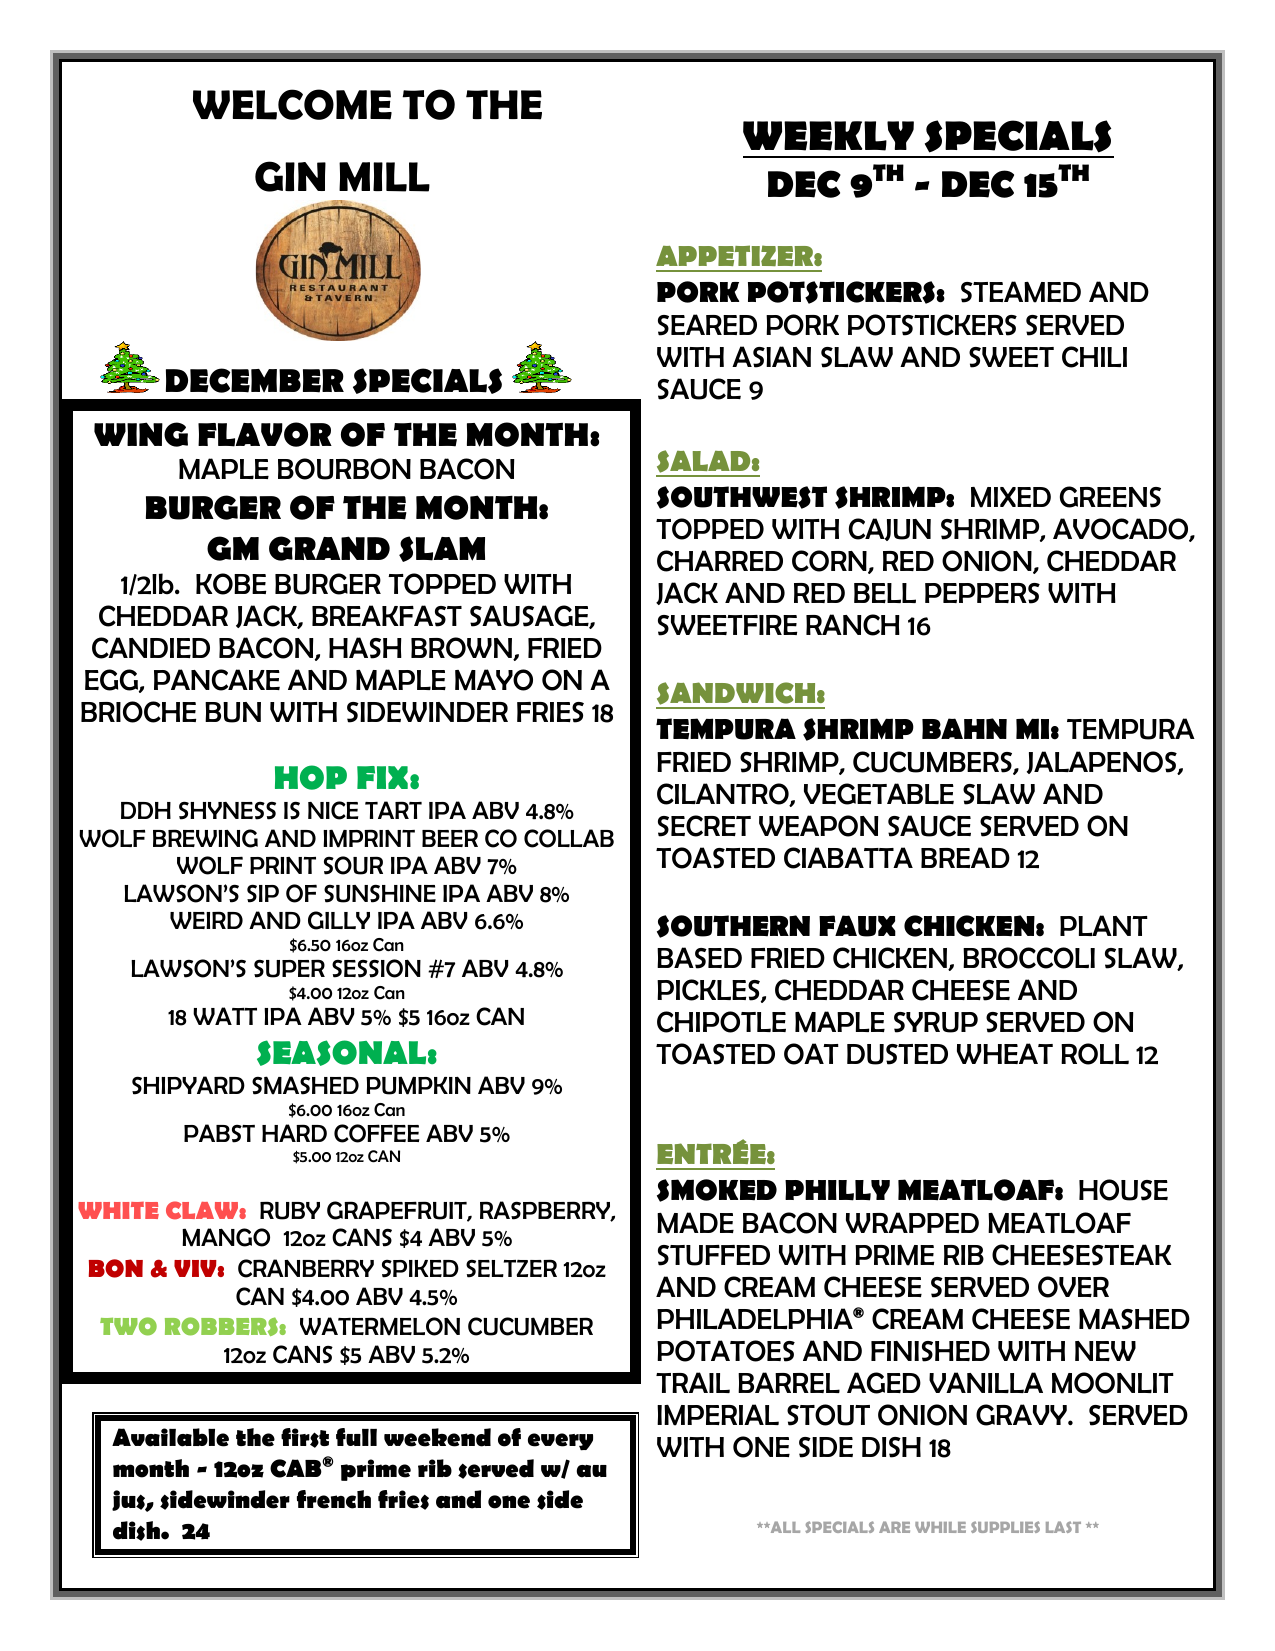 Gin Mill Weekly Specials for Dec 9th - Dec 15th (Page 1)